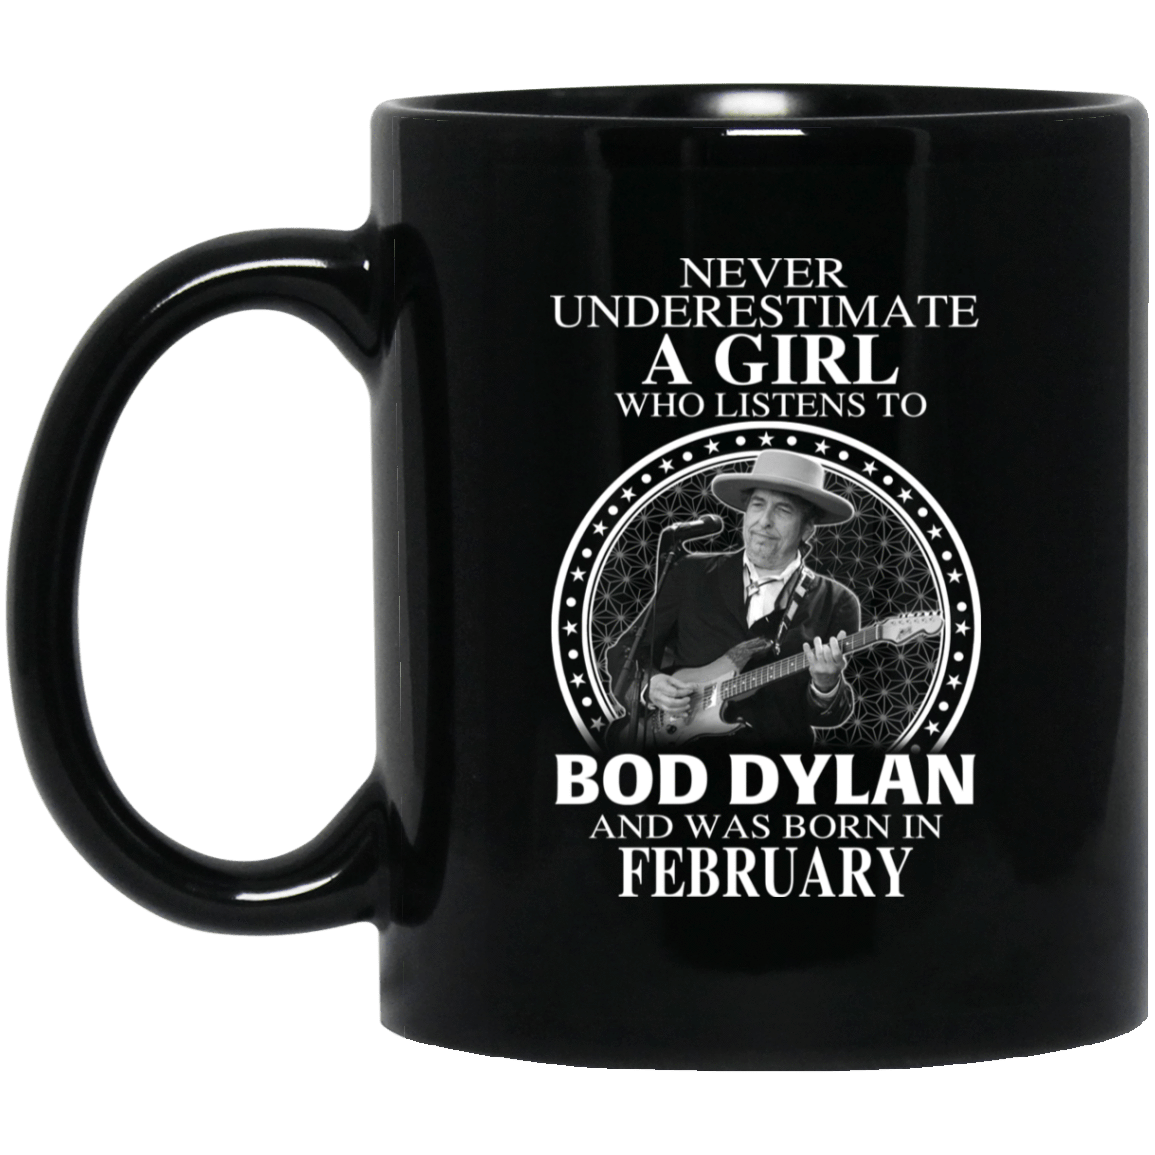 A Girl Who Listens To Bob Dylan And Was Born In February Mug 1065-10181-76153678-49307 - Tee Ript